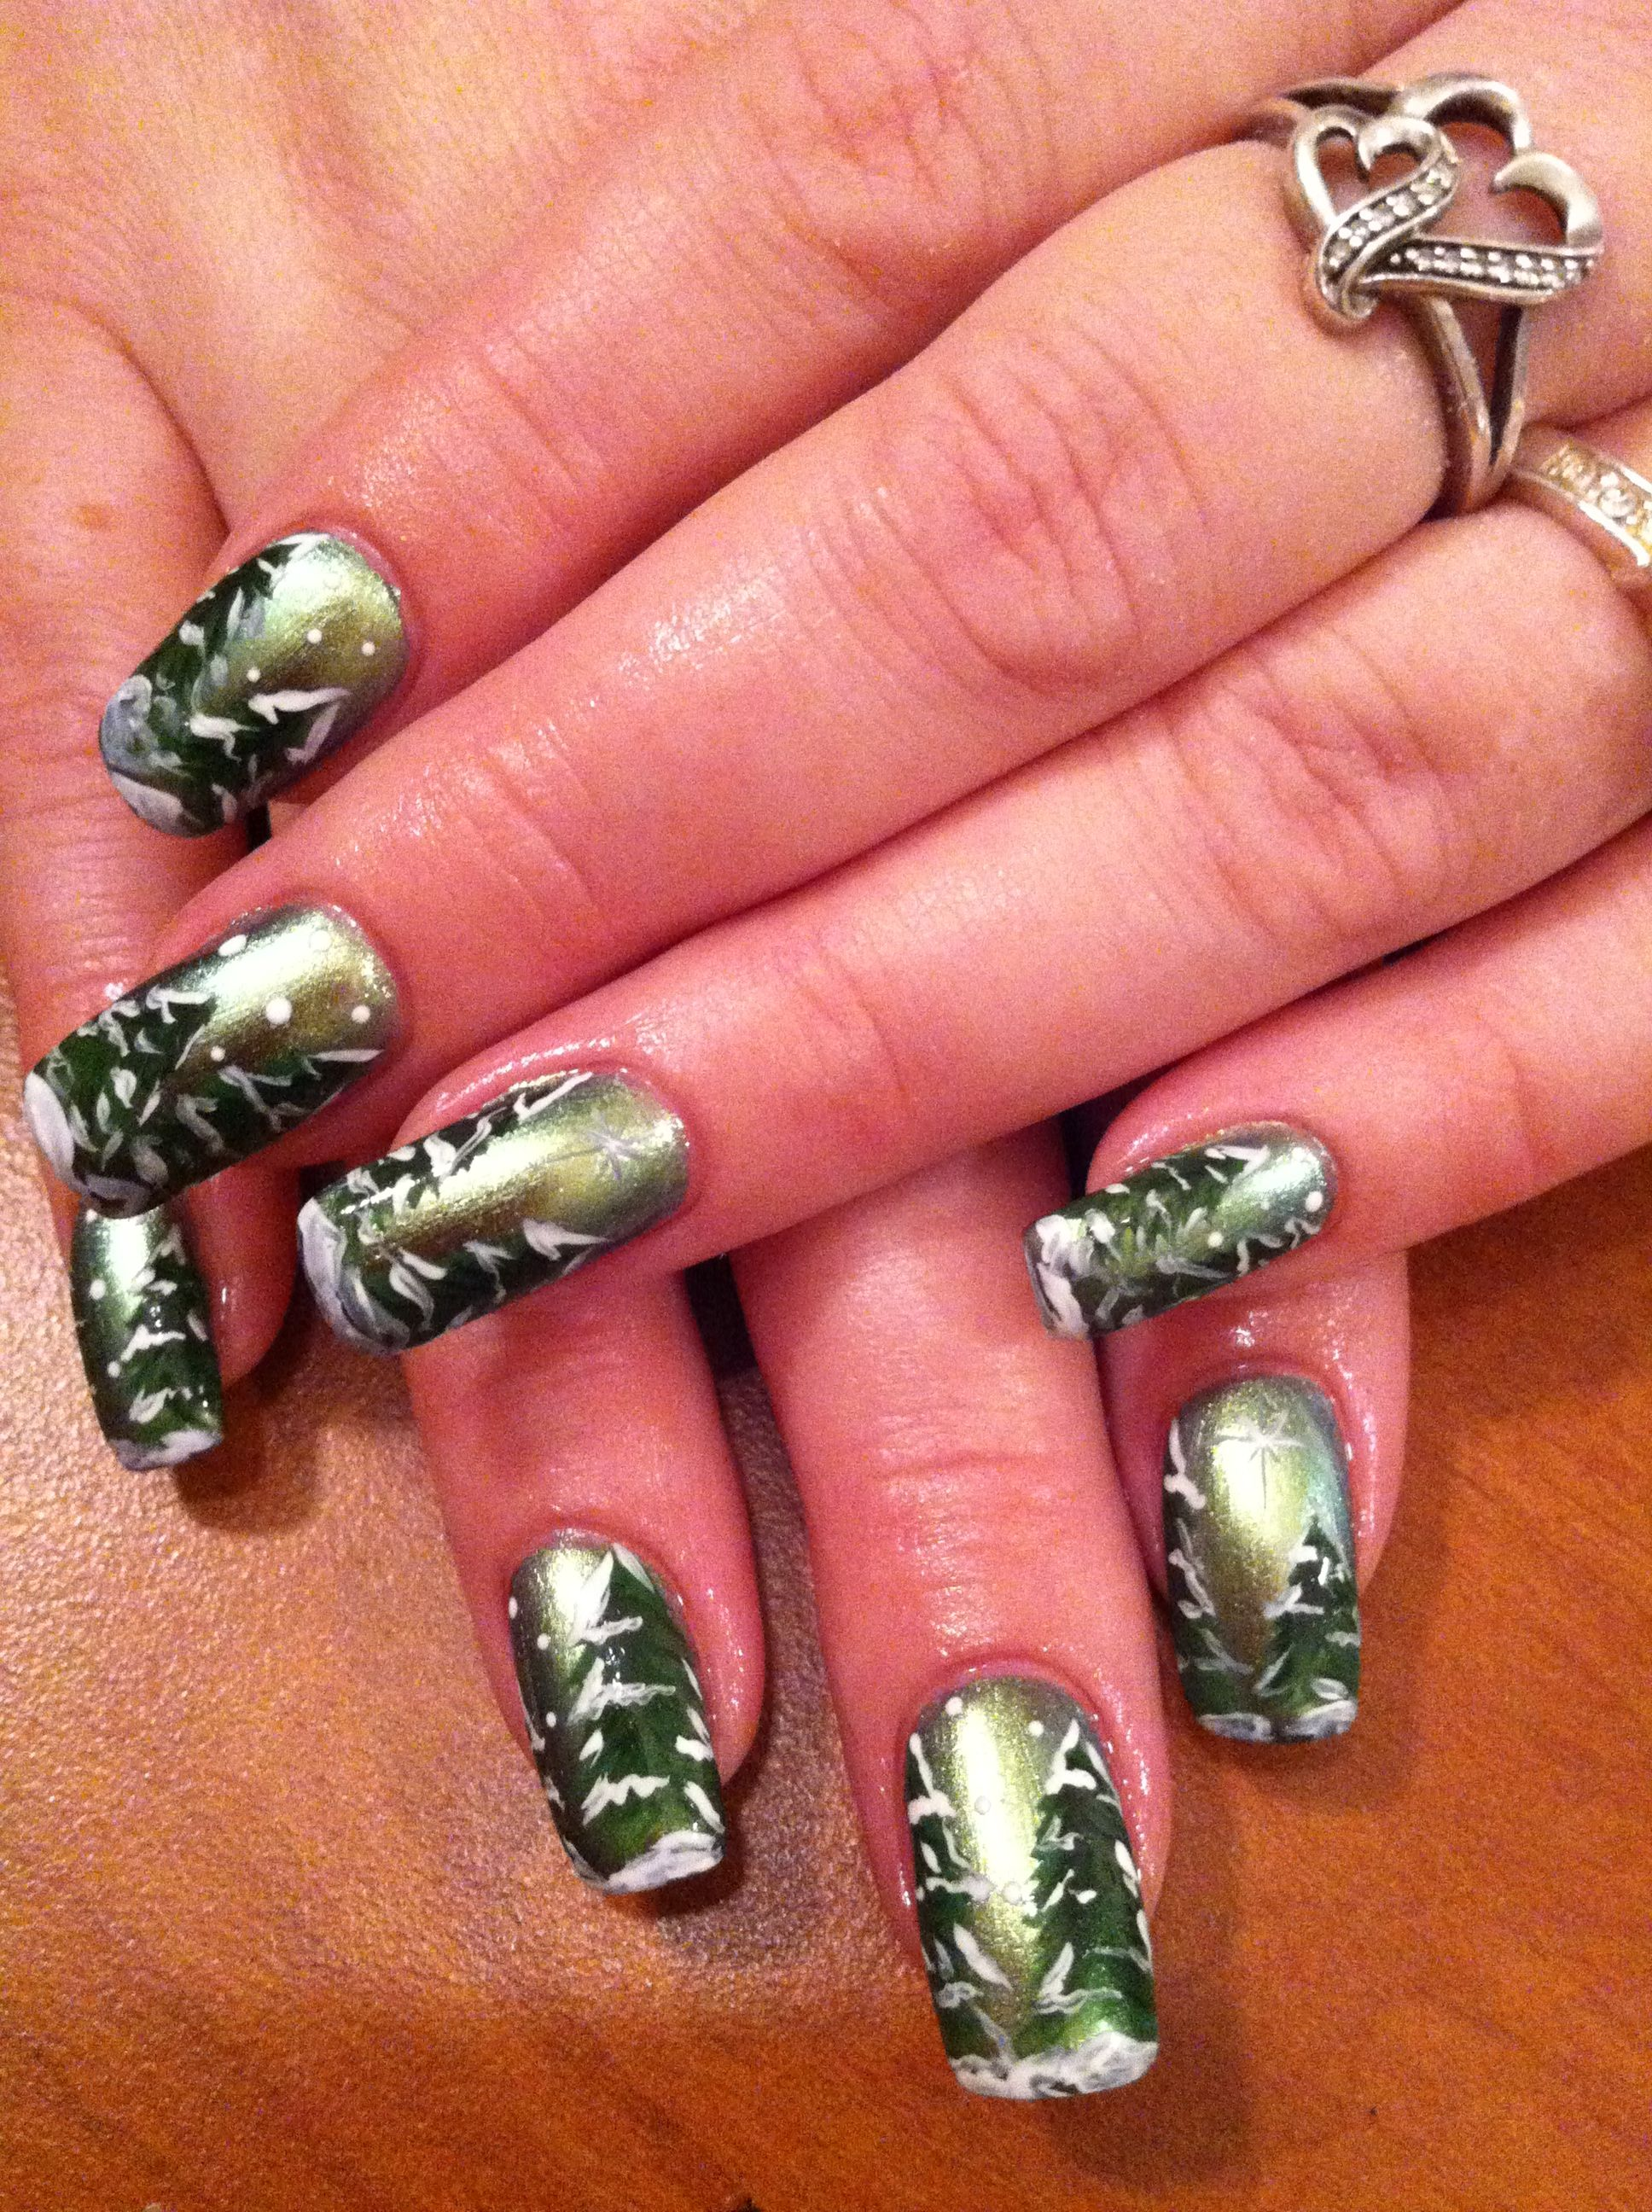 Winter nails | Nails by Colleen | Pinterest | Winter nails, Winter ...